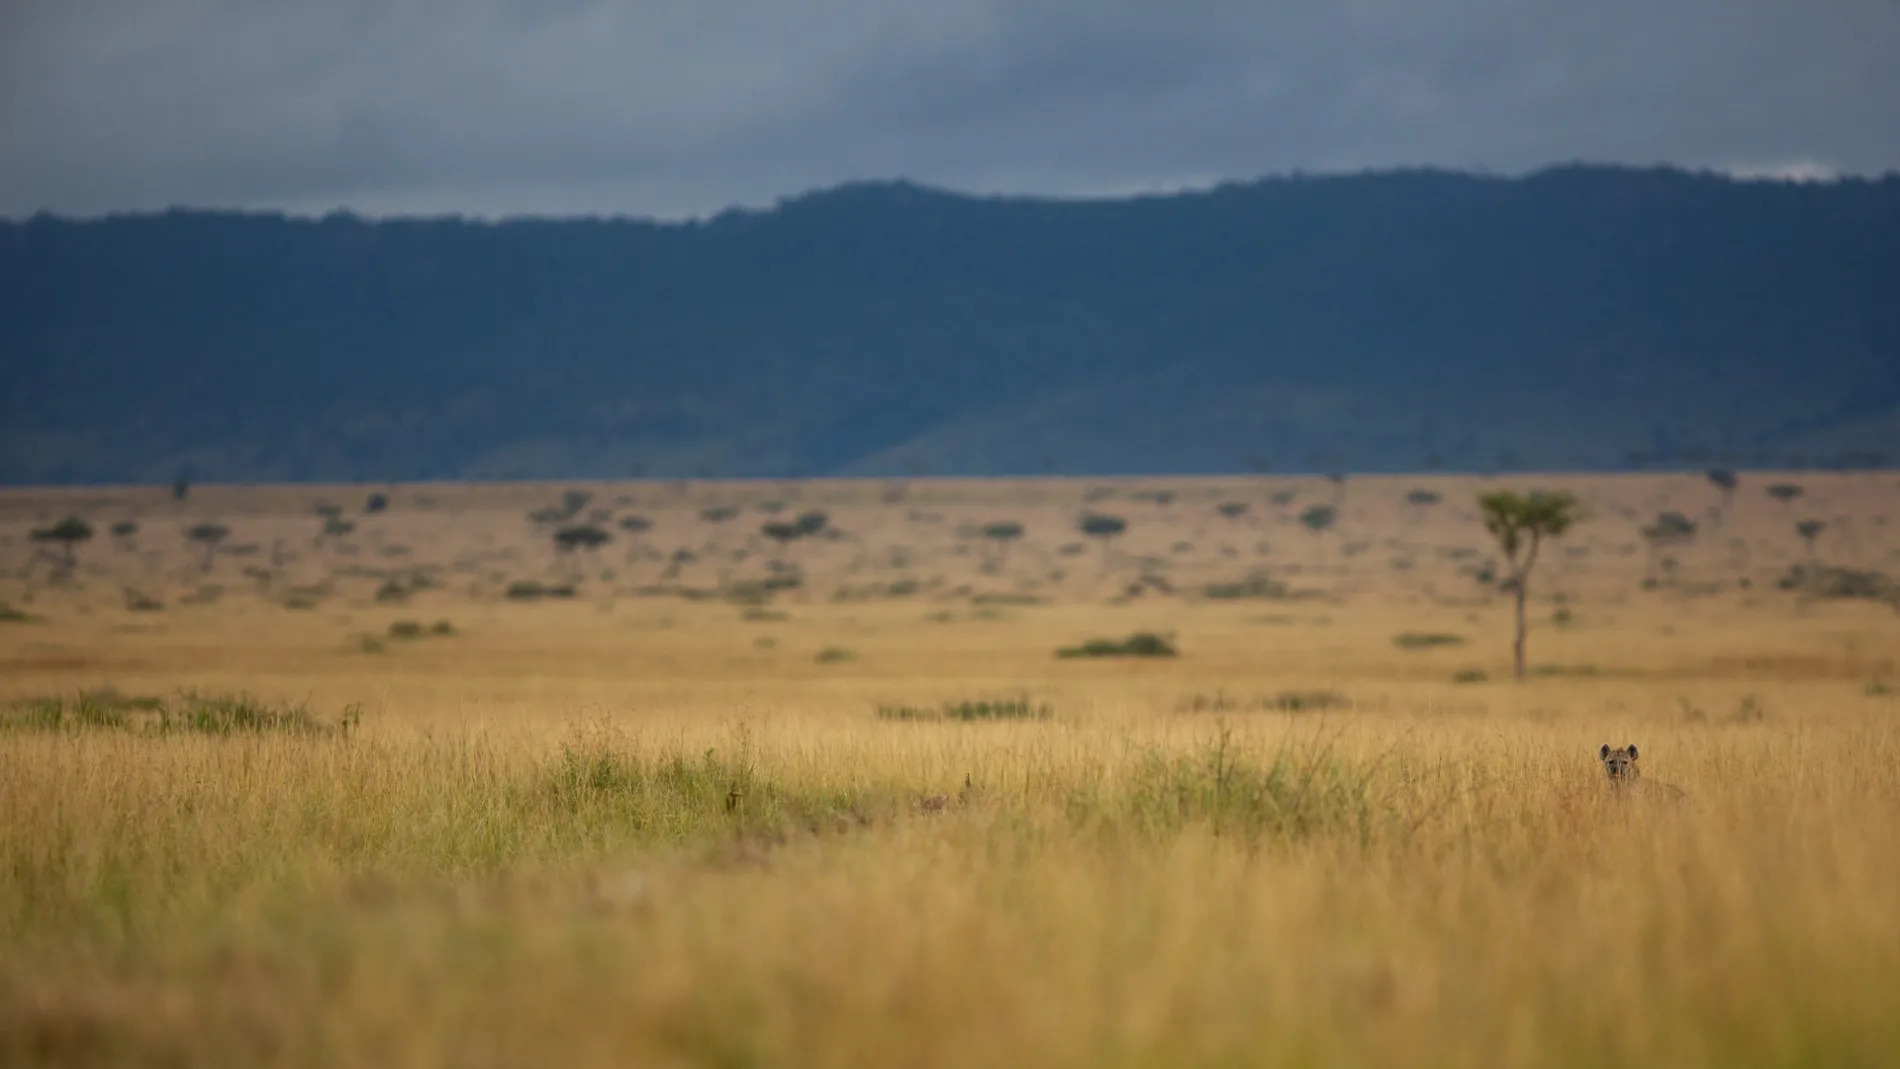 Hyena in the distance